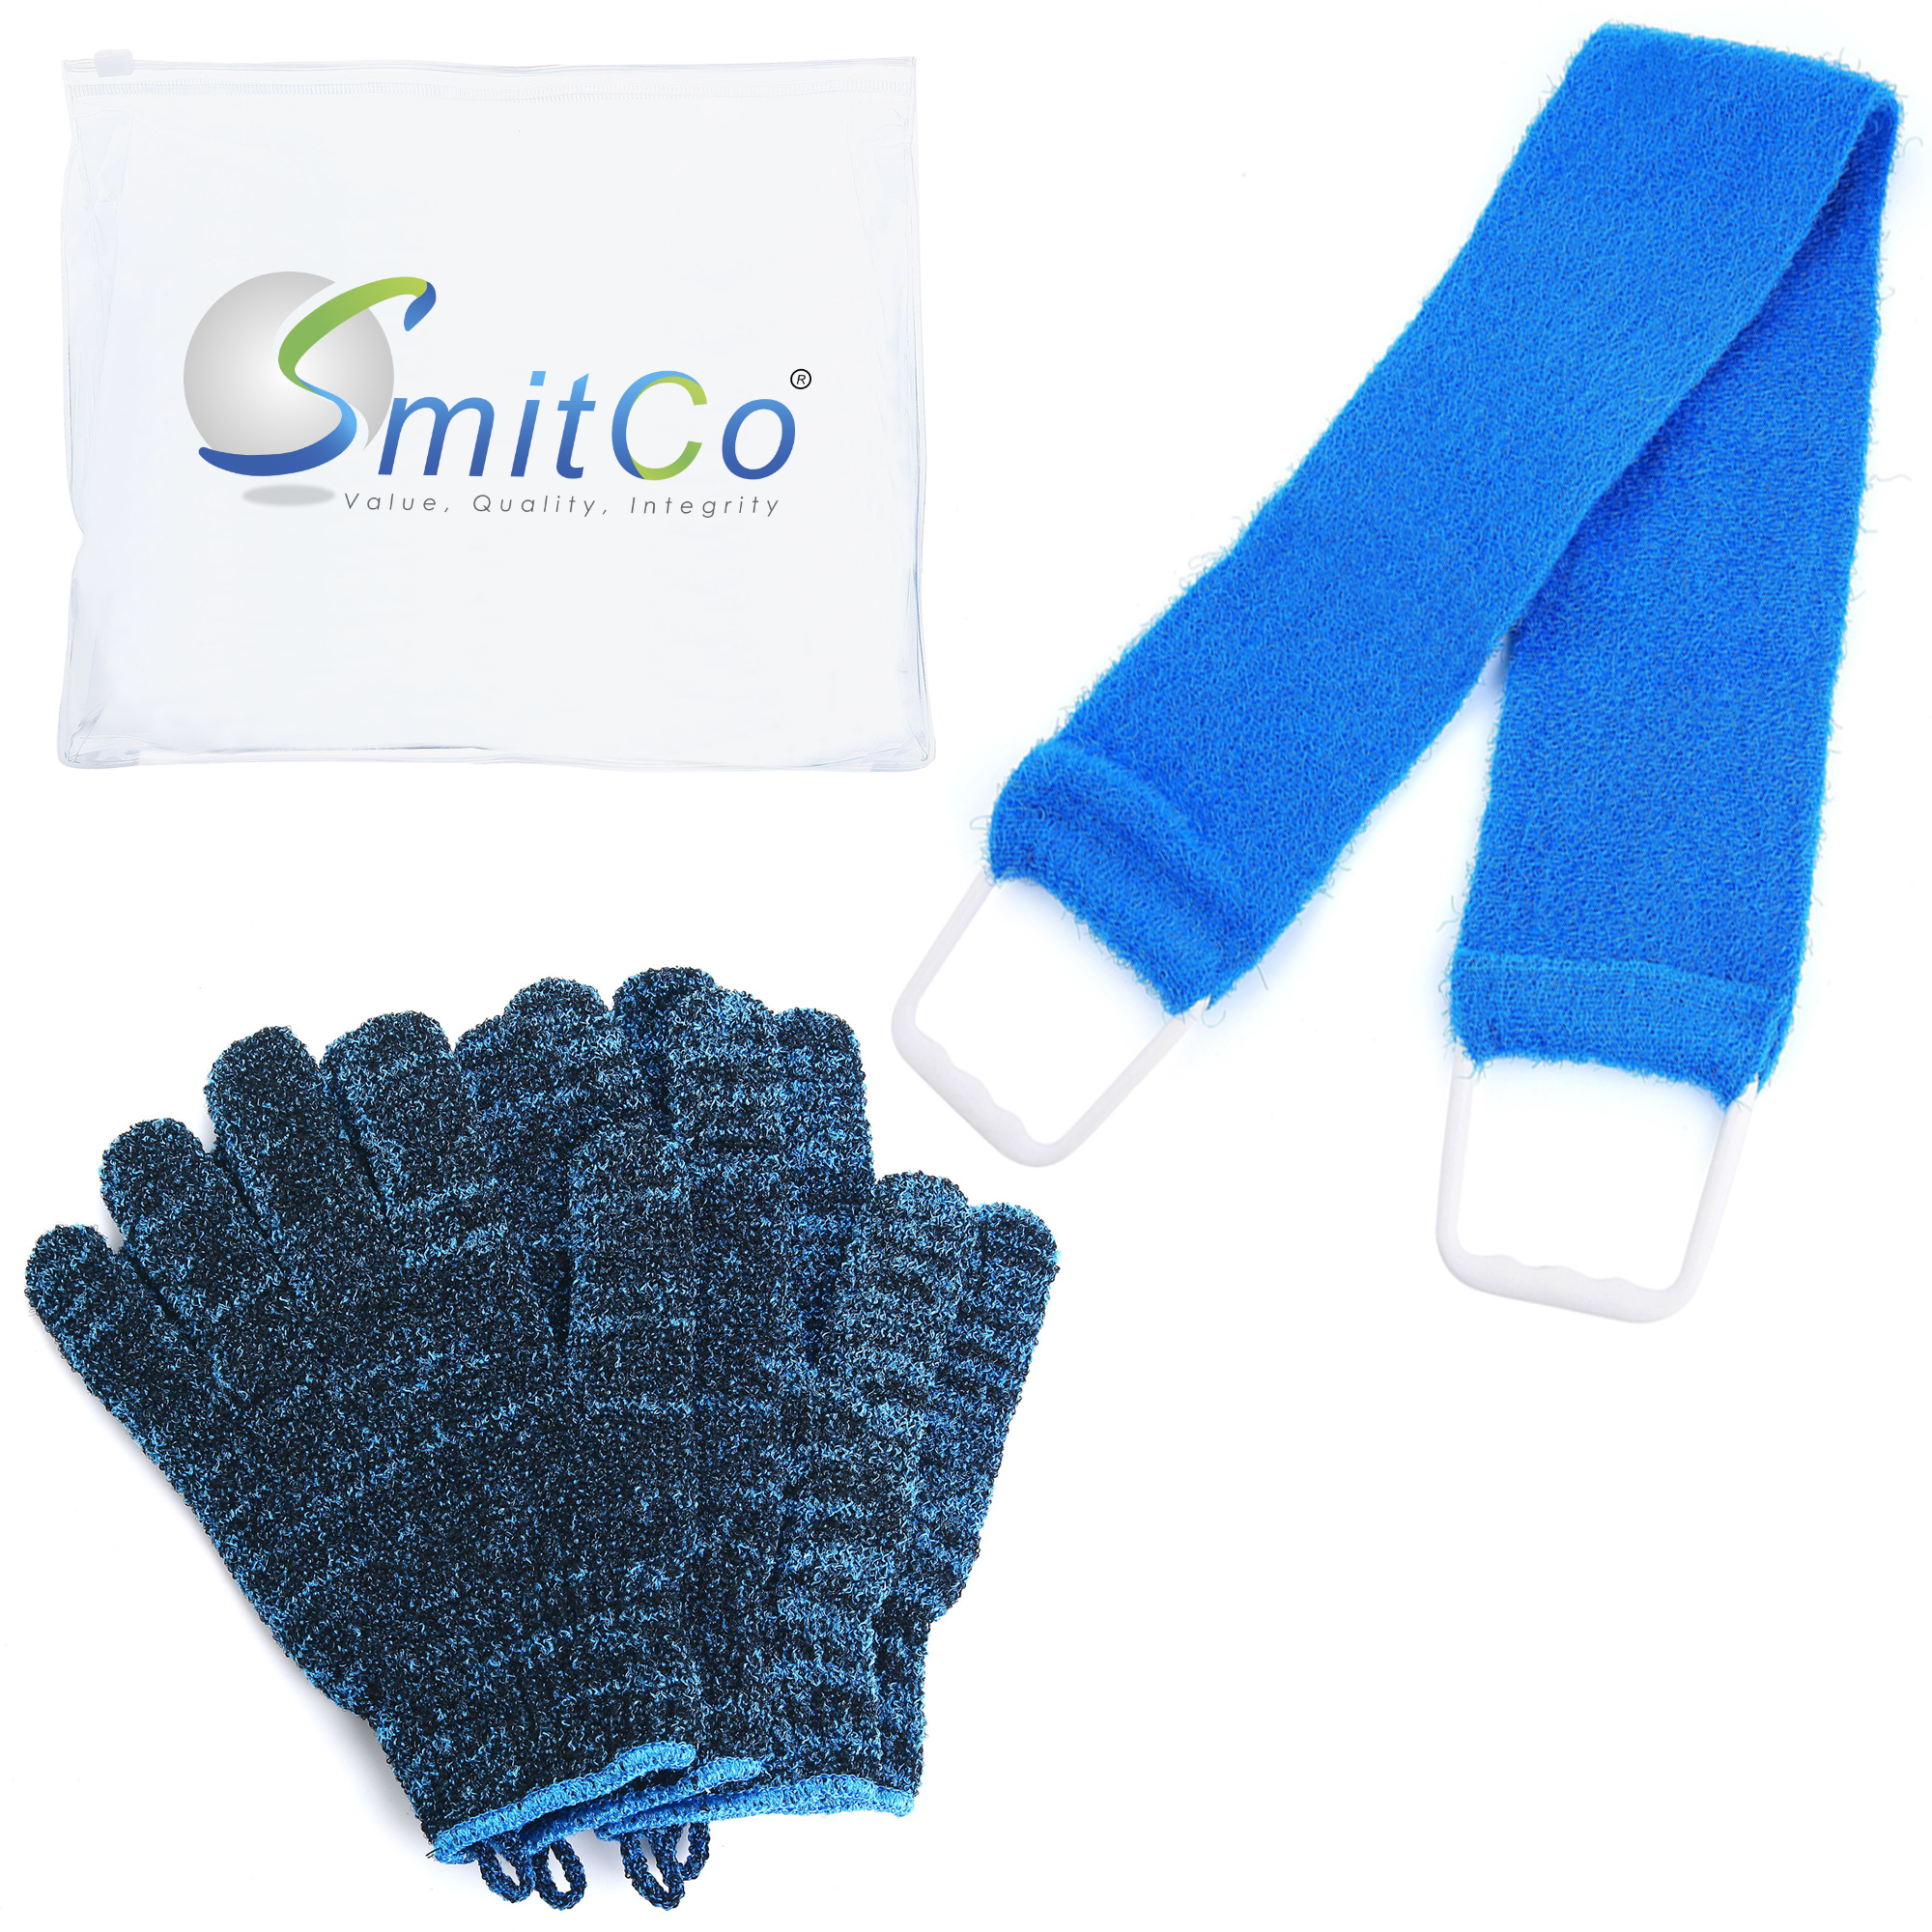 Back To School Bash Facebook Live Event! WIN: Smitco's Body Exfoliation with Exfoliating Gloves and Shower Back Scrubber